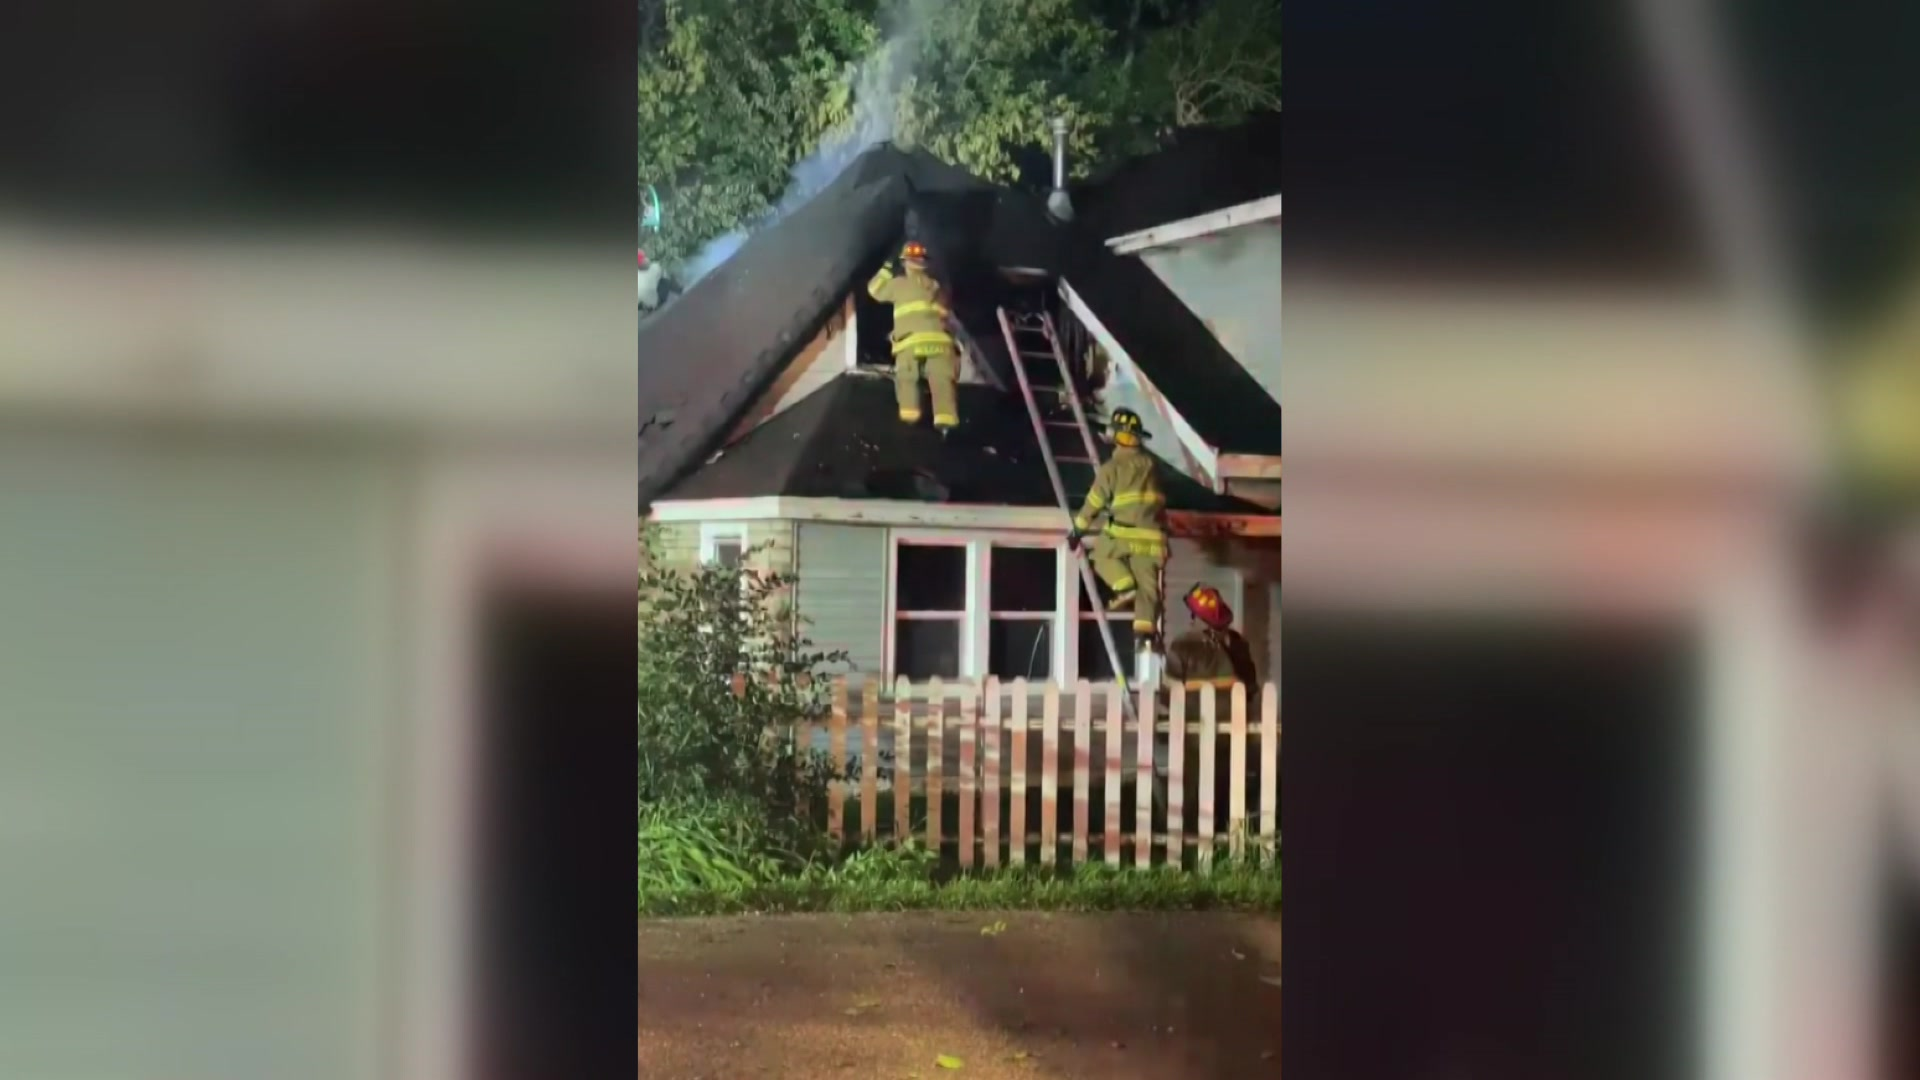 Fire destroys family home in Paddock Lake credit: Adrian Machalik by Family's home destroyed in overnight fire in Paddock Lake, community asks for help